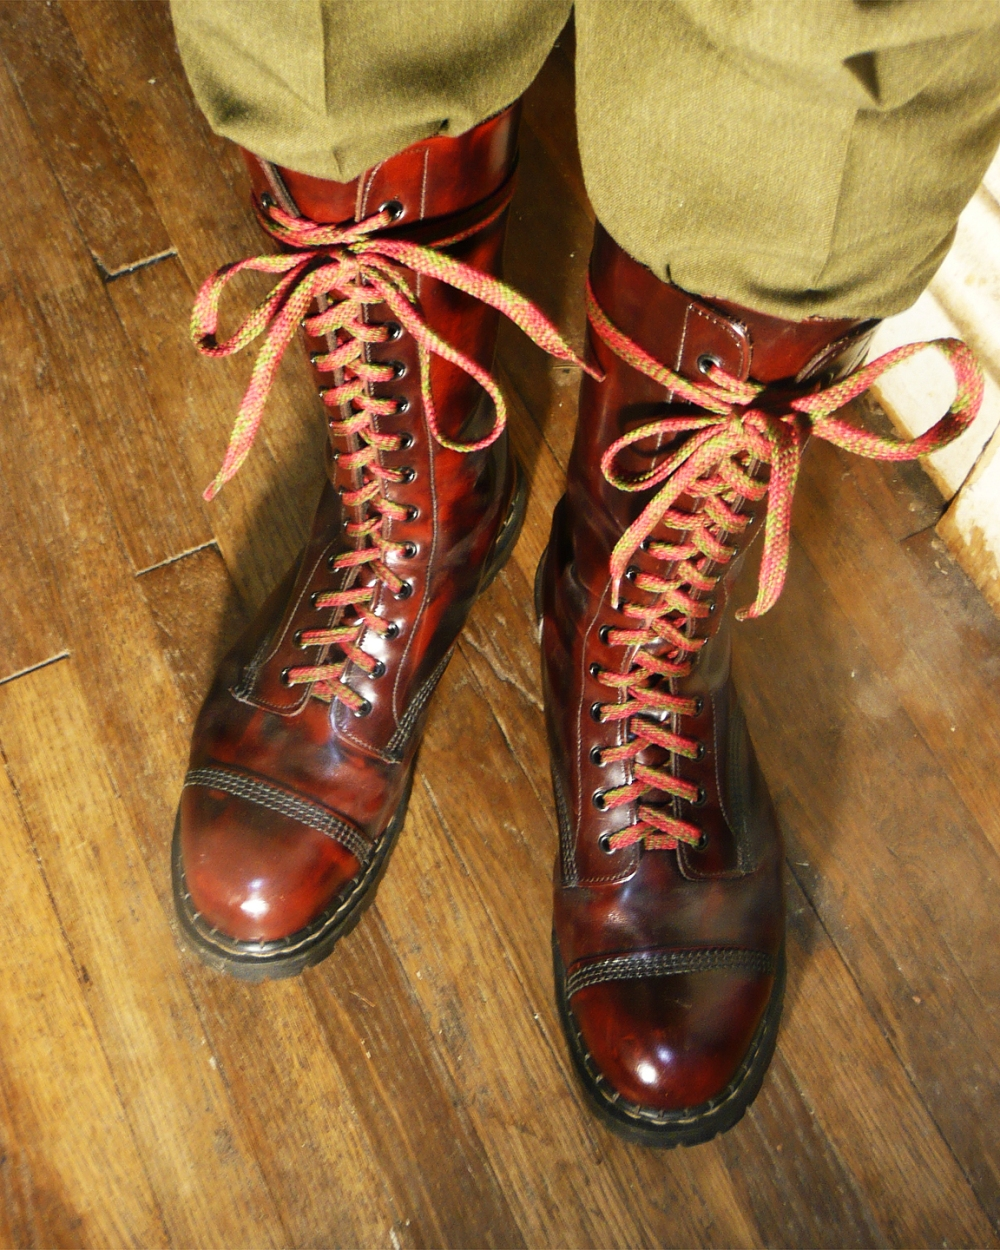 lace-ups 01 - low-res